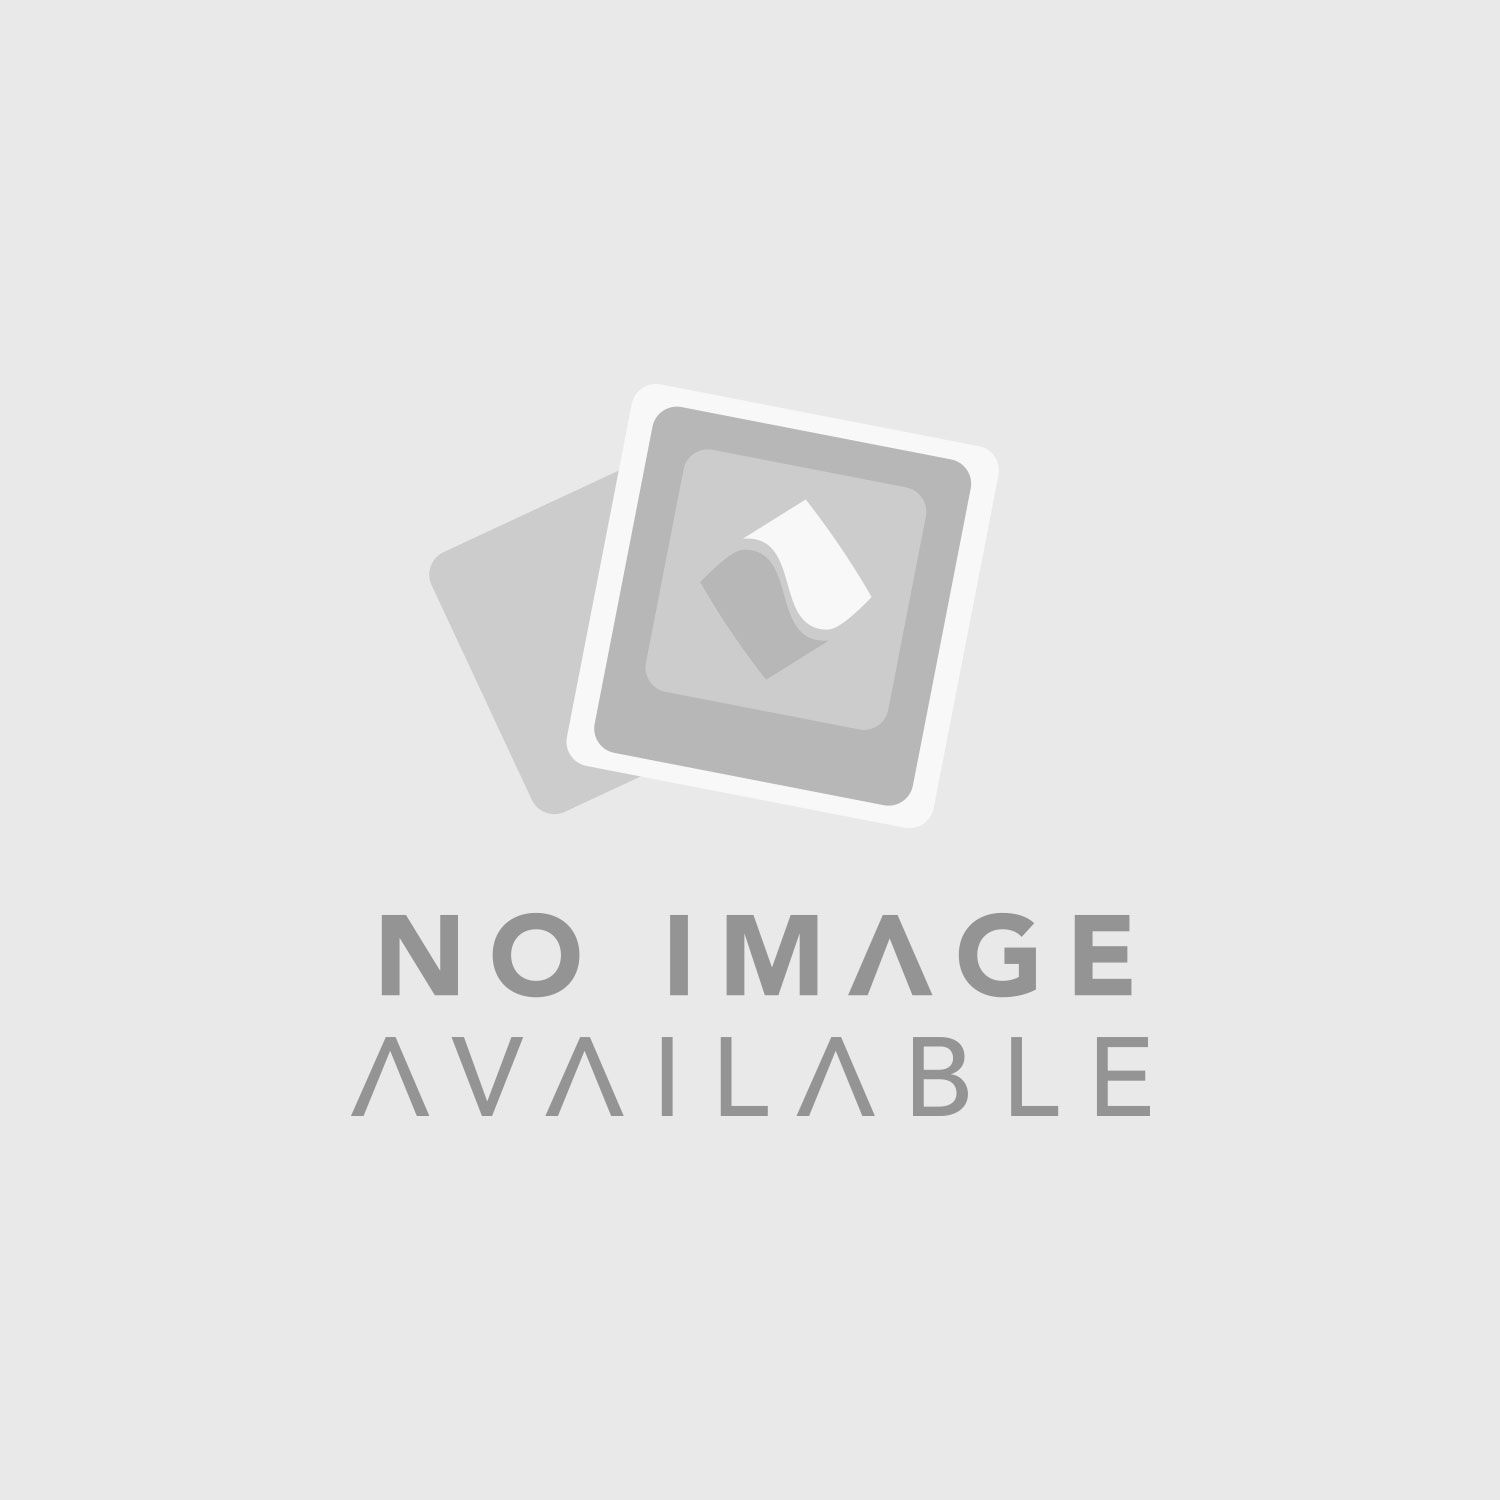 Rode RodeCaster Pro Ultimate 2 Guest Podcasting Bundle with ZDM-1 Mics (Compass Boom Arms)